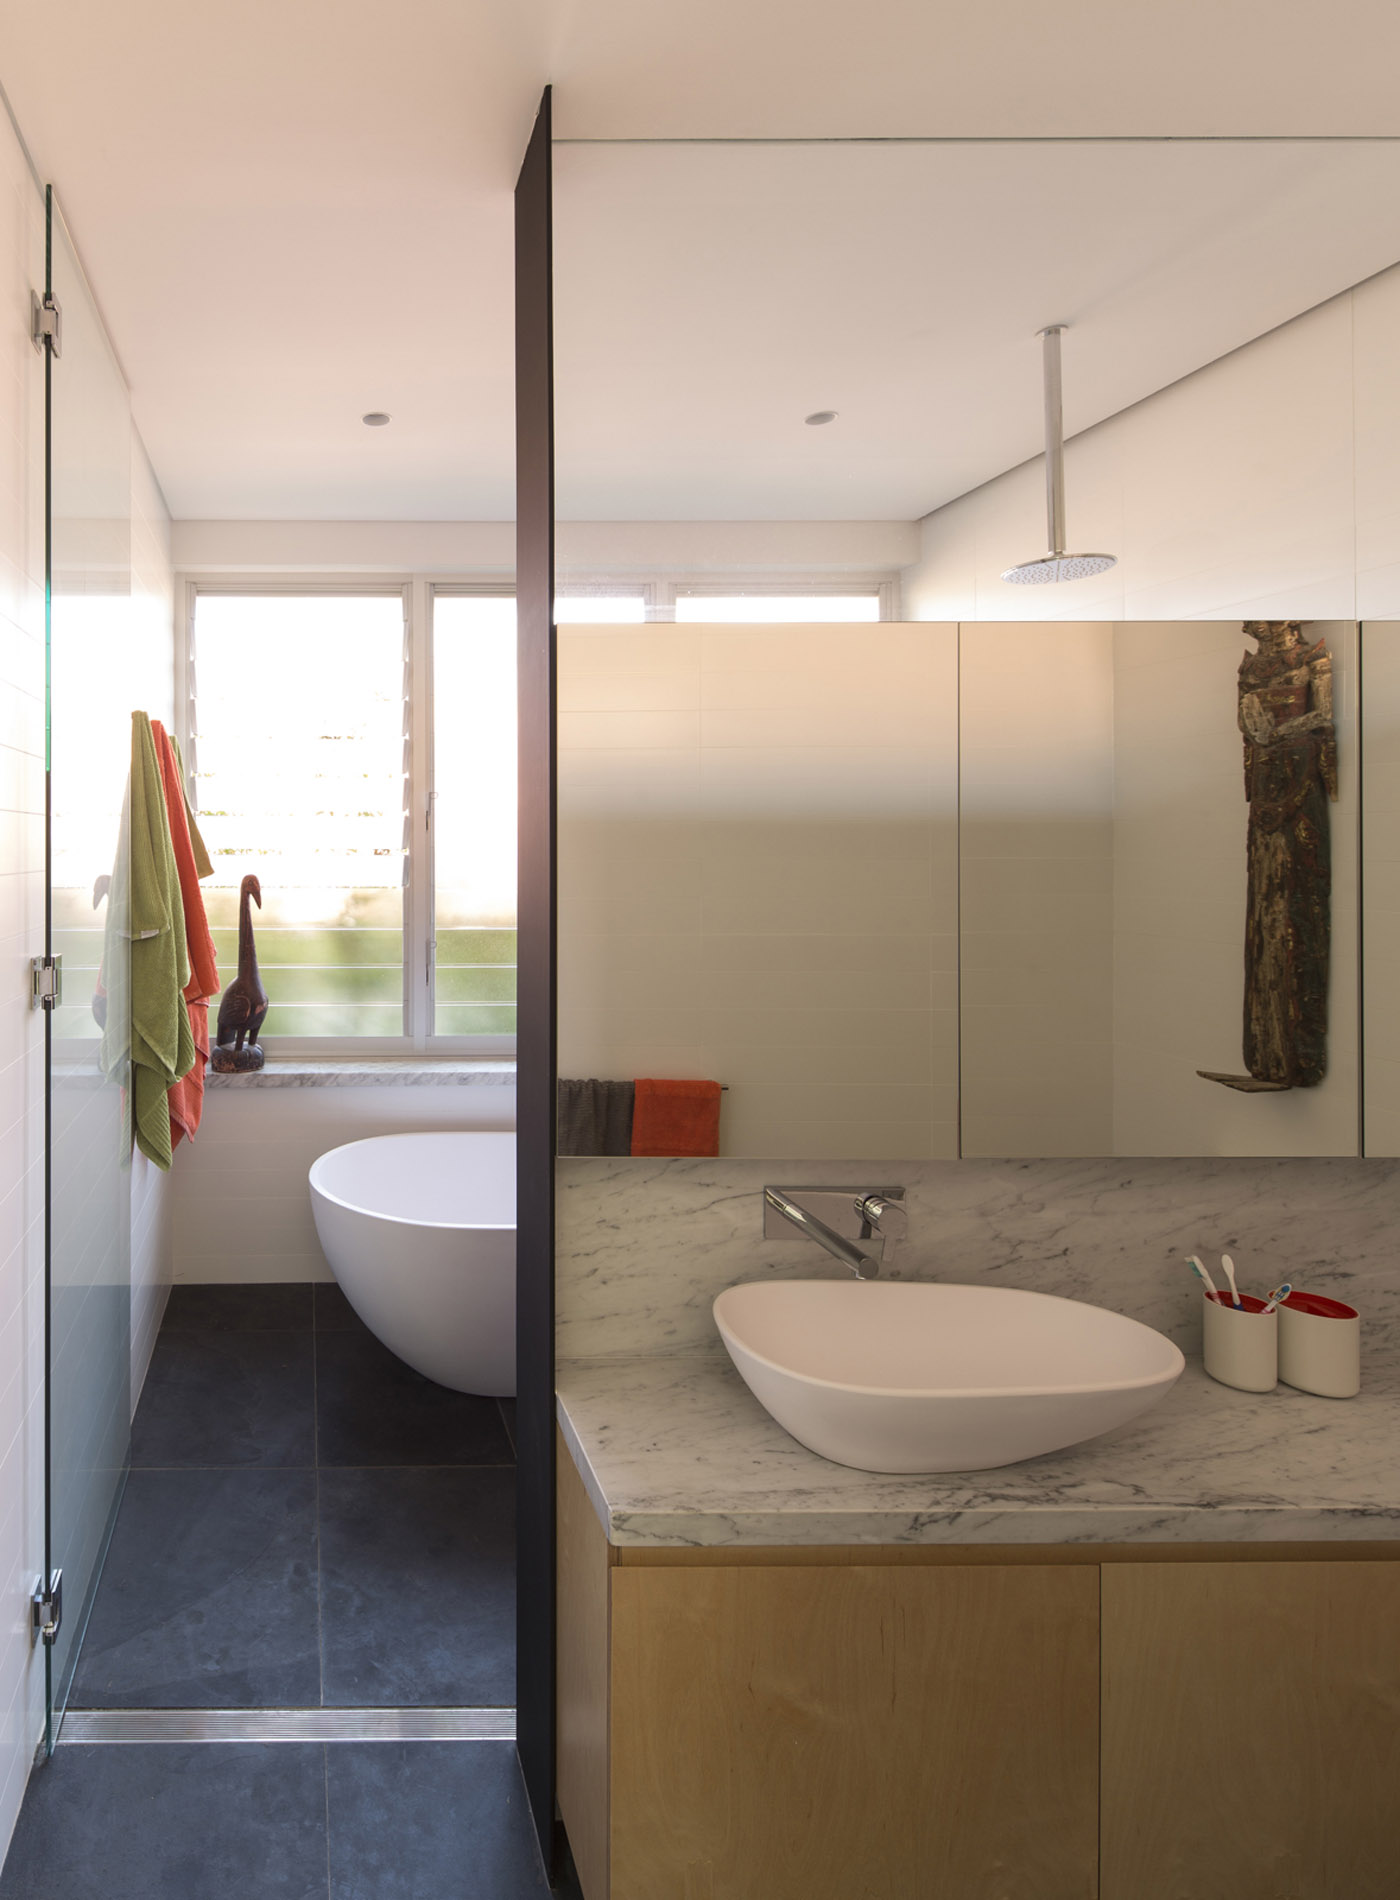 Salgo Kitching House by Sydney award winning architecture office Sam Crawford Architects. View of bathroom.